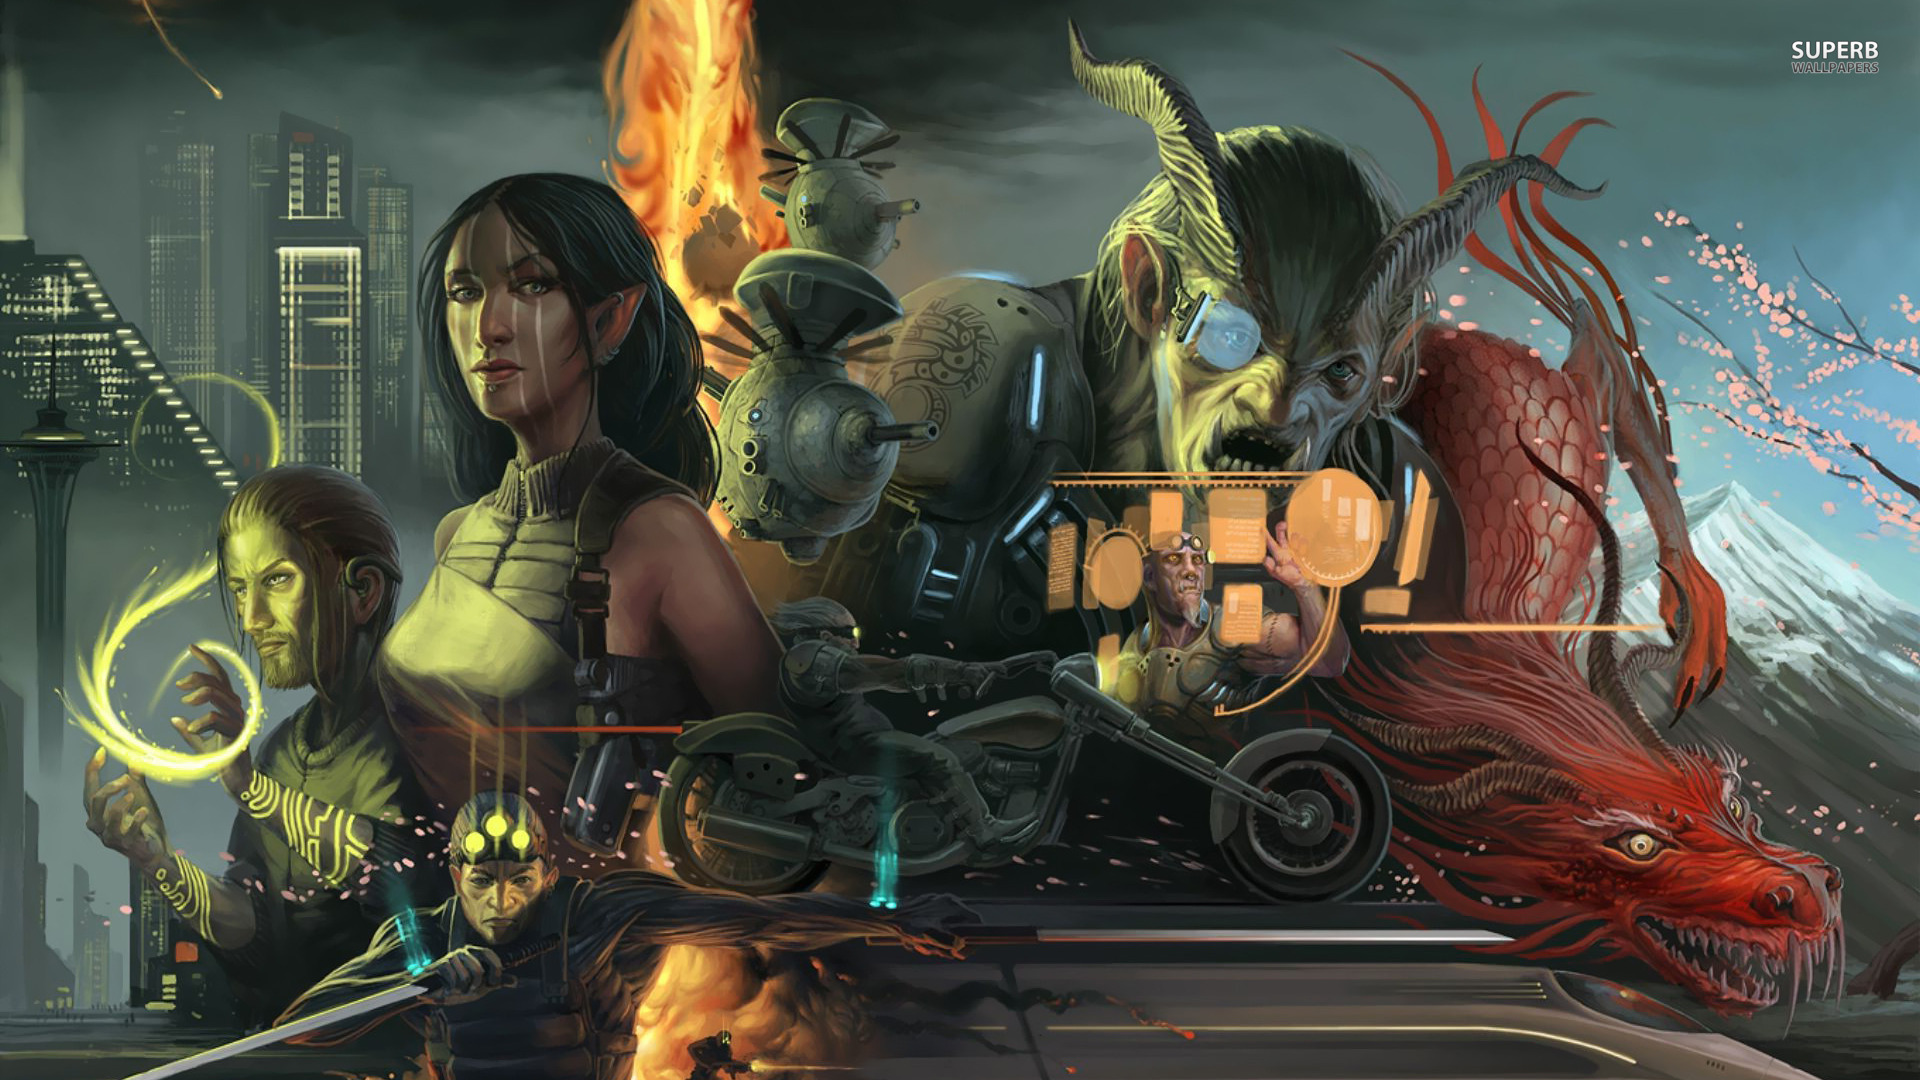 shadowrun-returns-17014-1920x1080.jpg